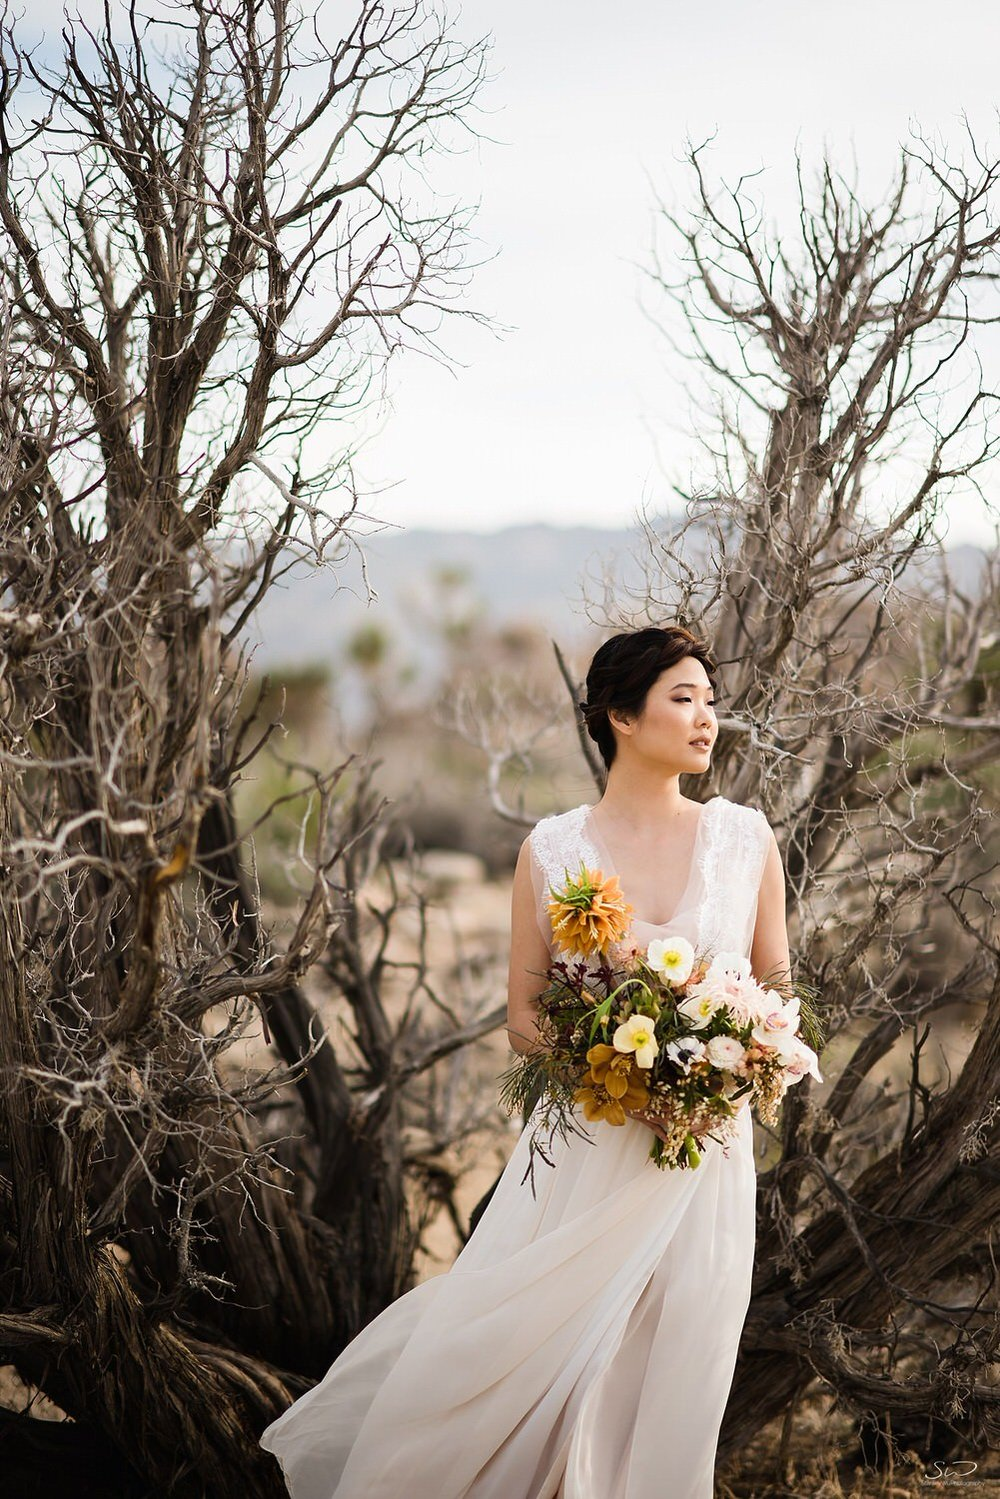 Bride with desert wedding bouquet | Joshua Tree Desert Wedding & Engagement Inspiration